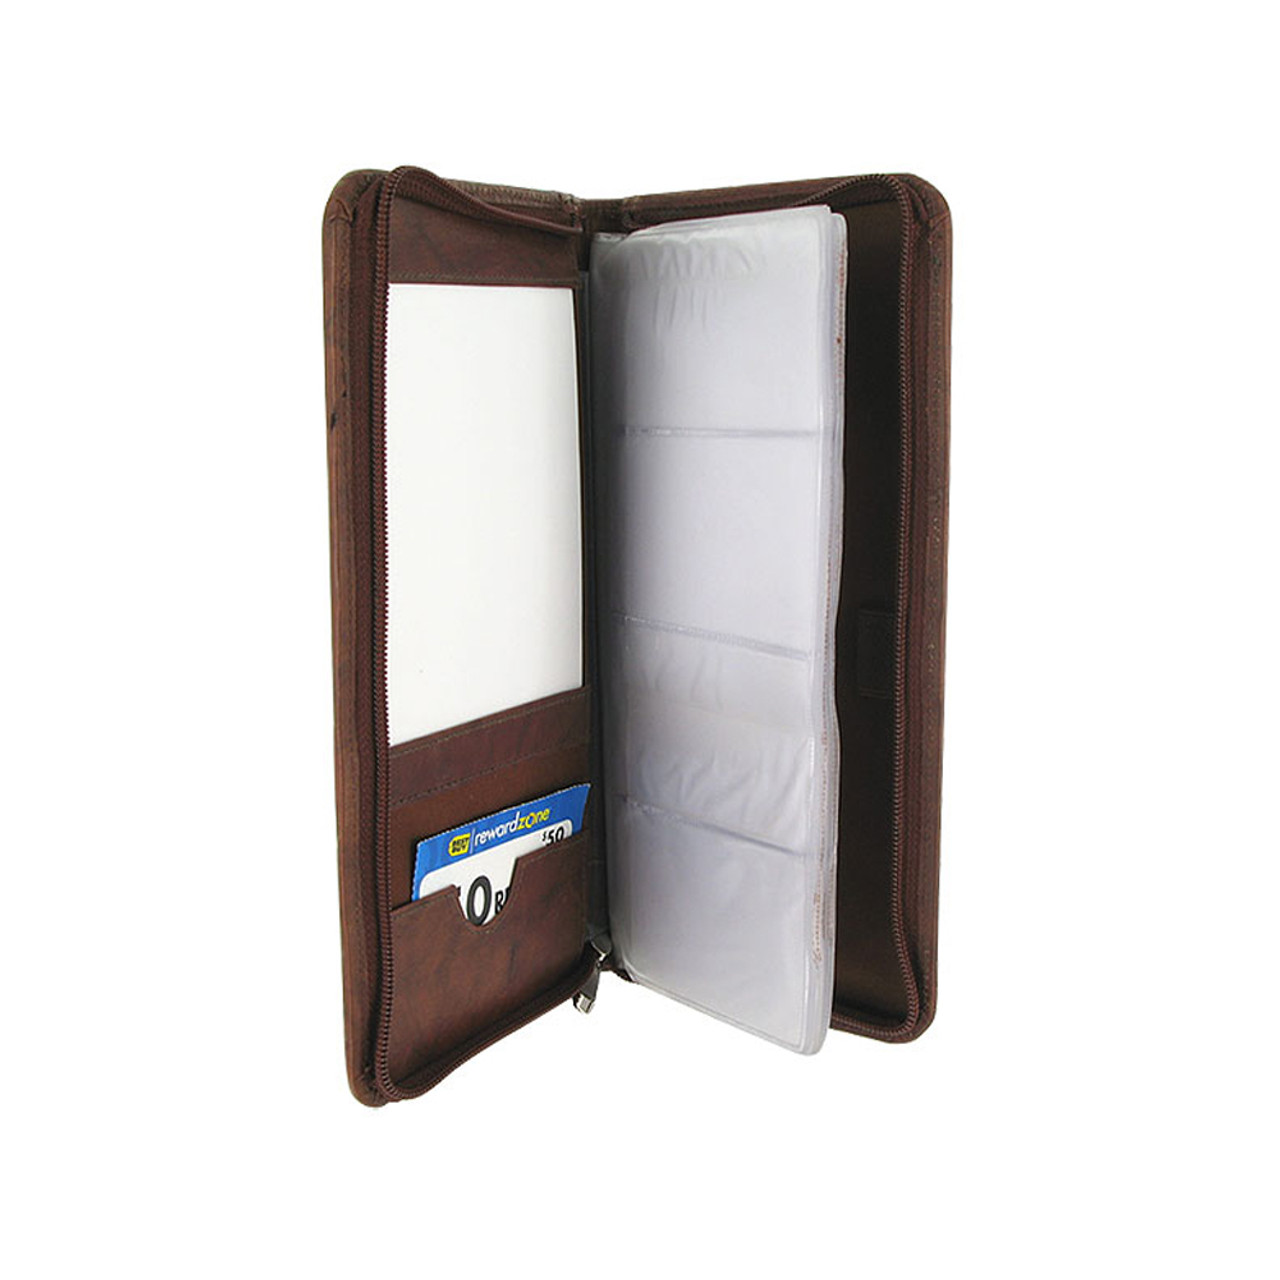 Leather Business Card Holder 5 x 10 inch Wallet